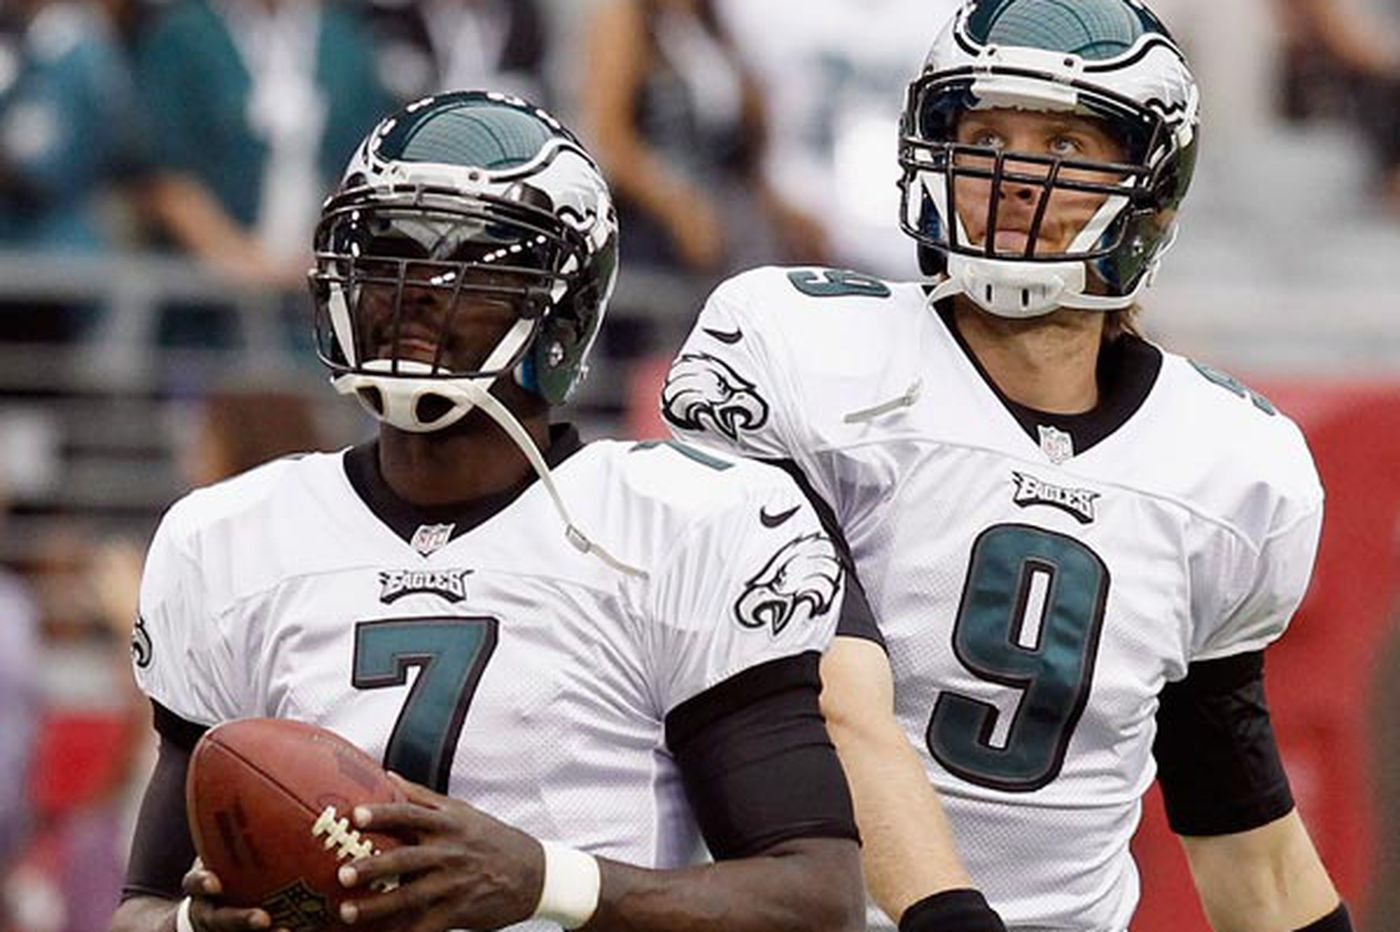 Clues to the Eagles depth chart